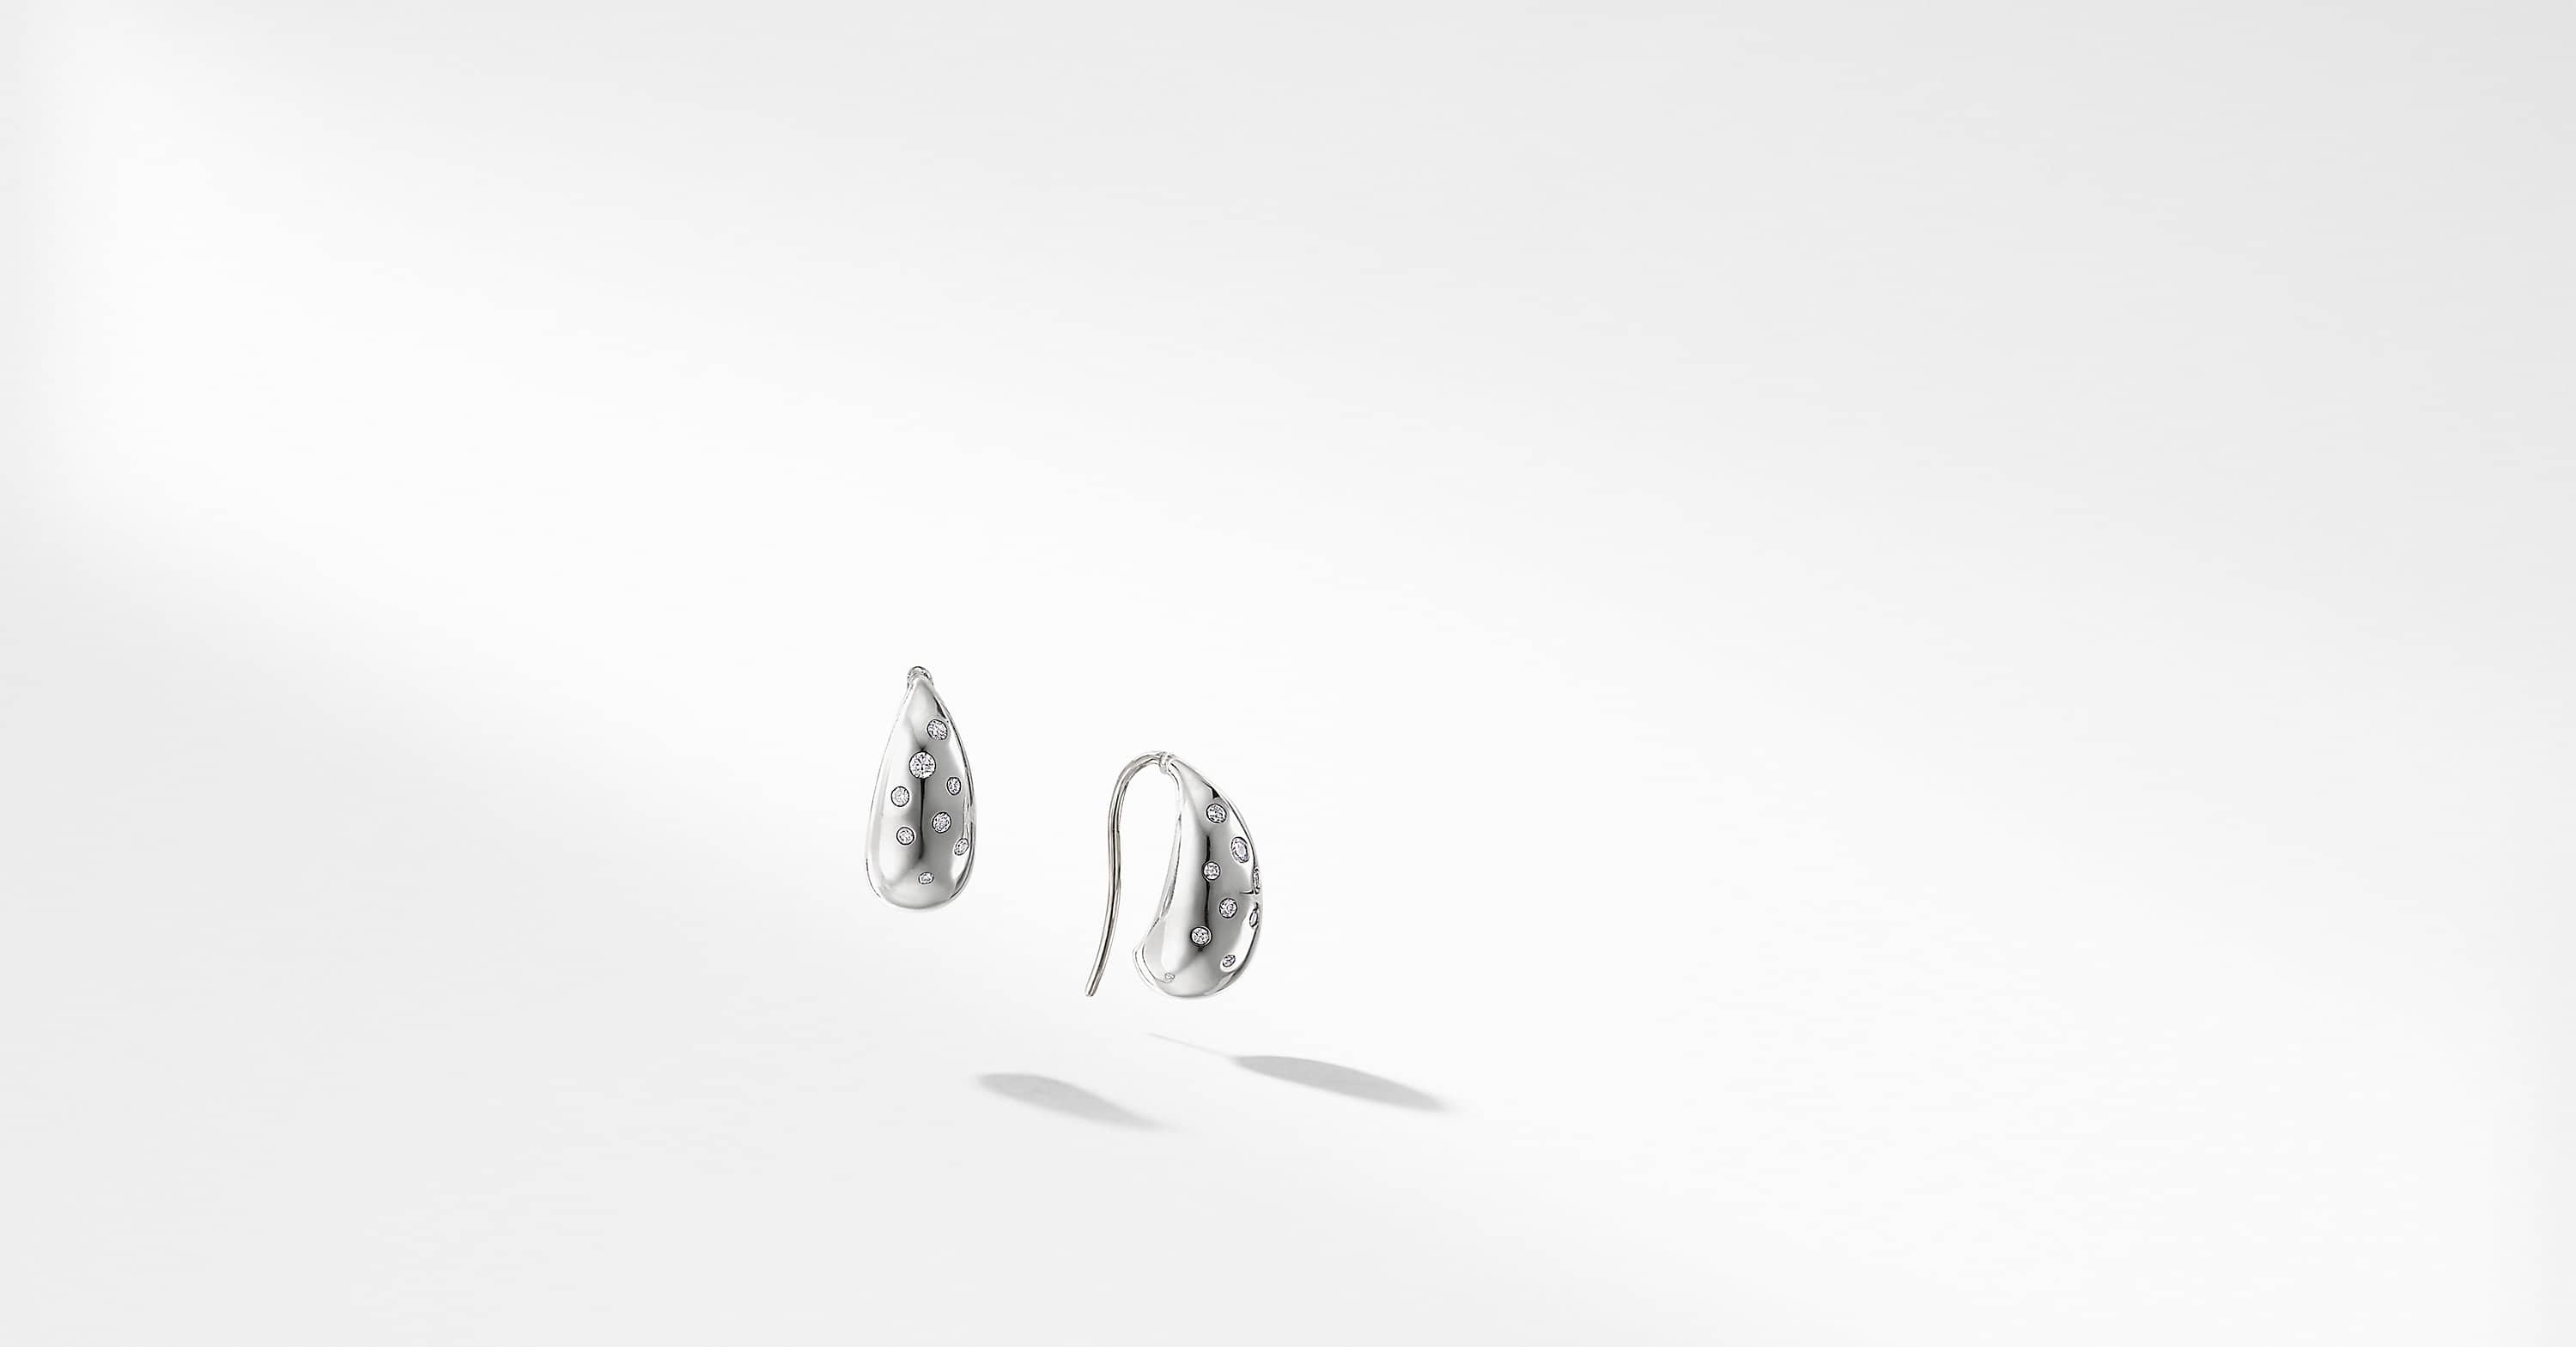 Pure Form Earrings with Diamonds, 15mm